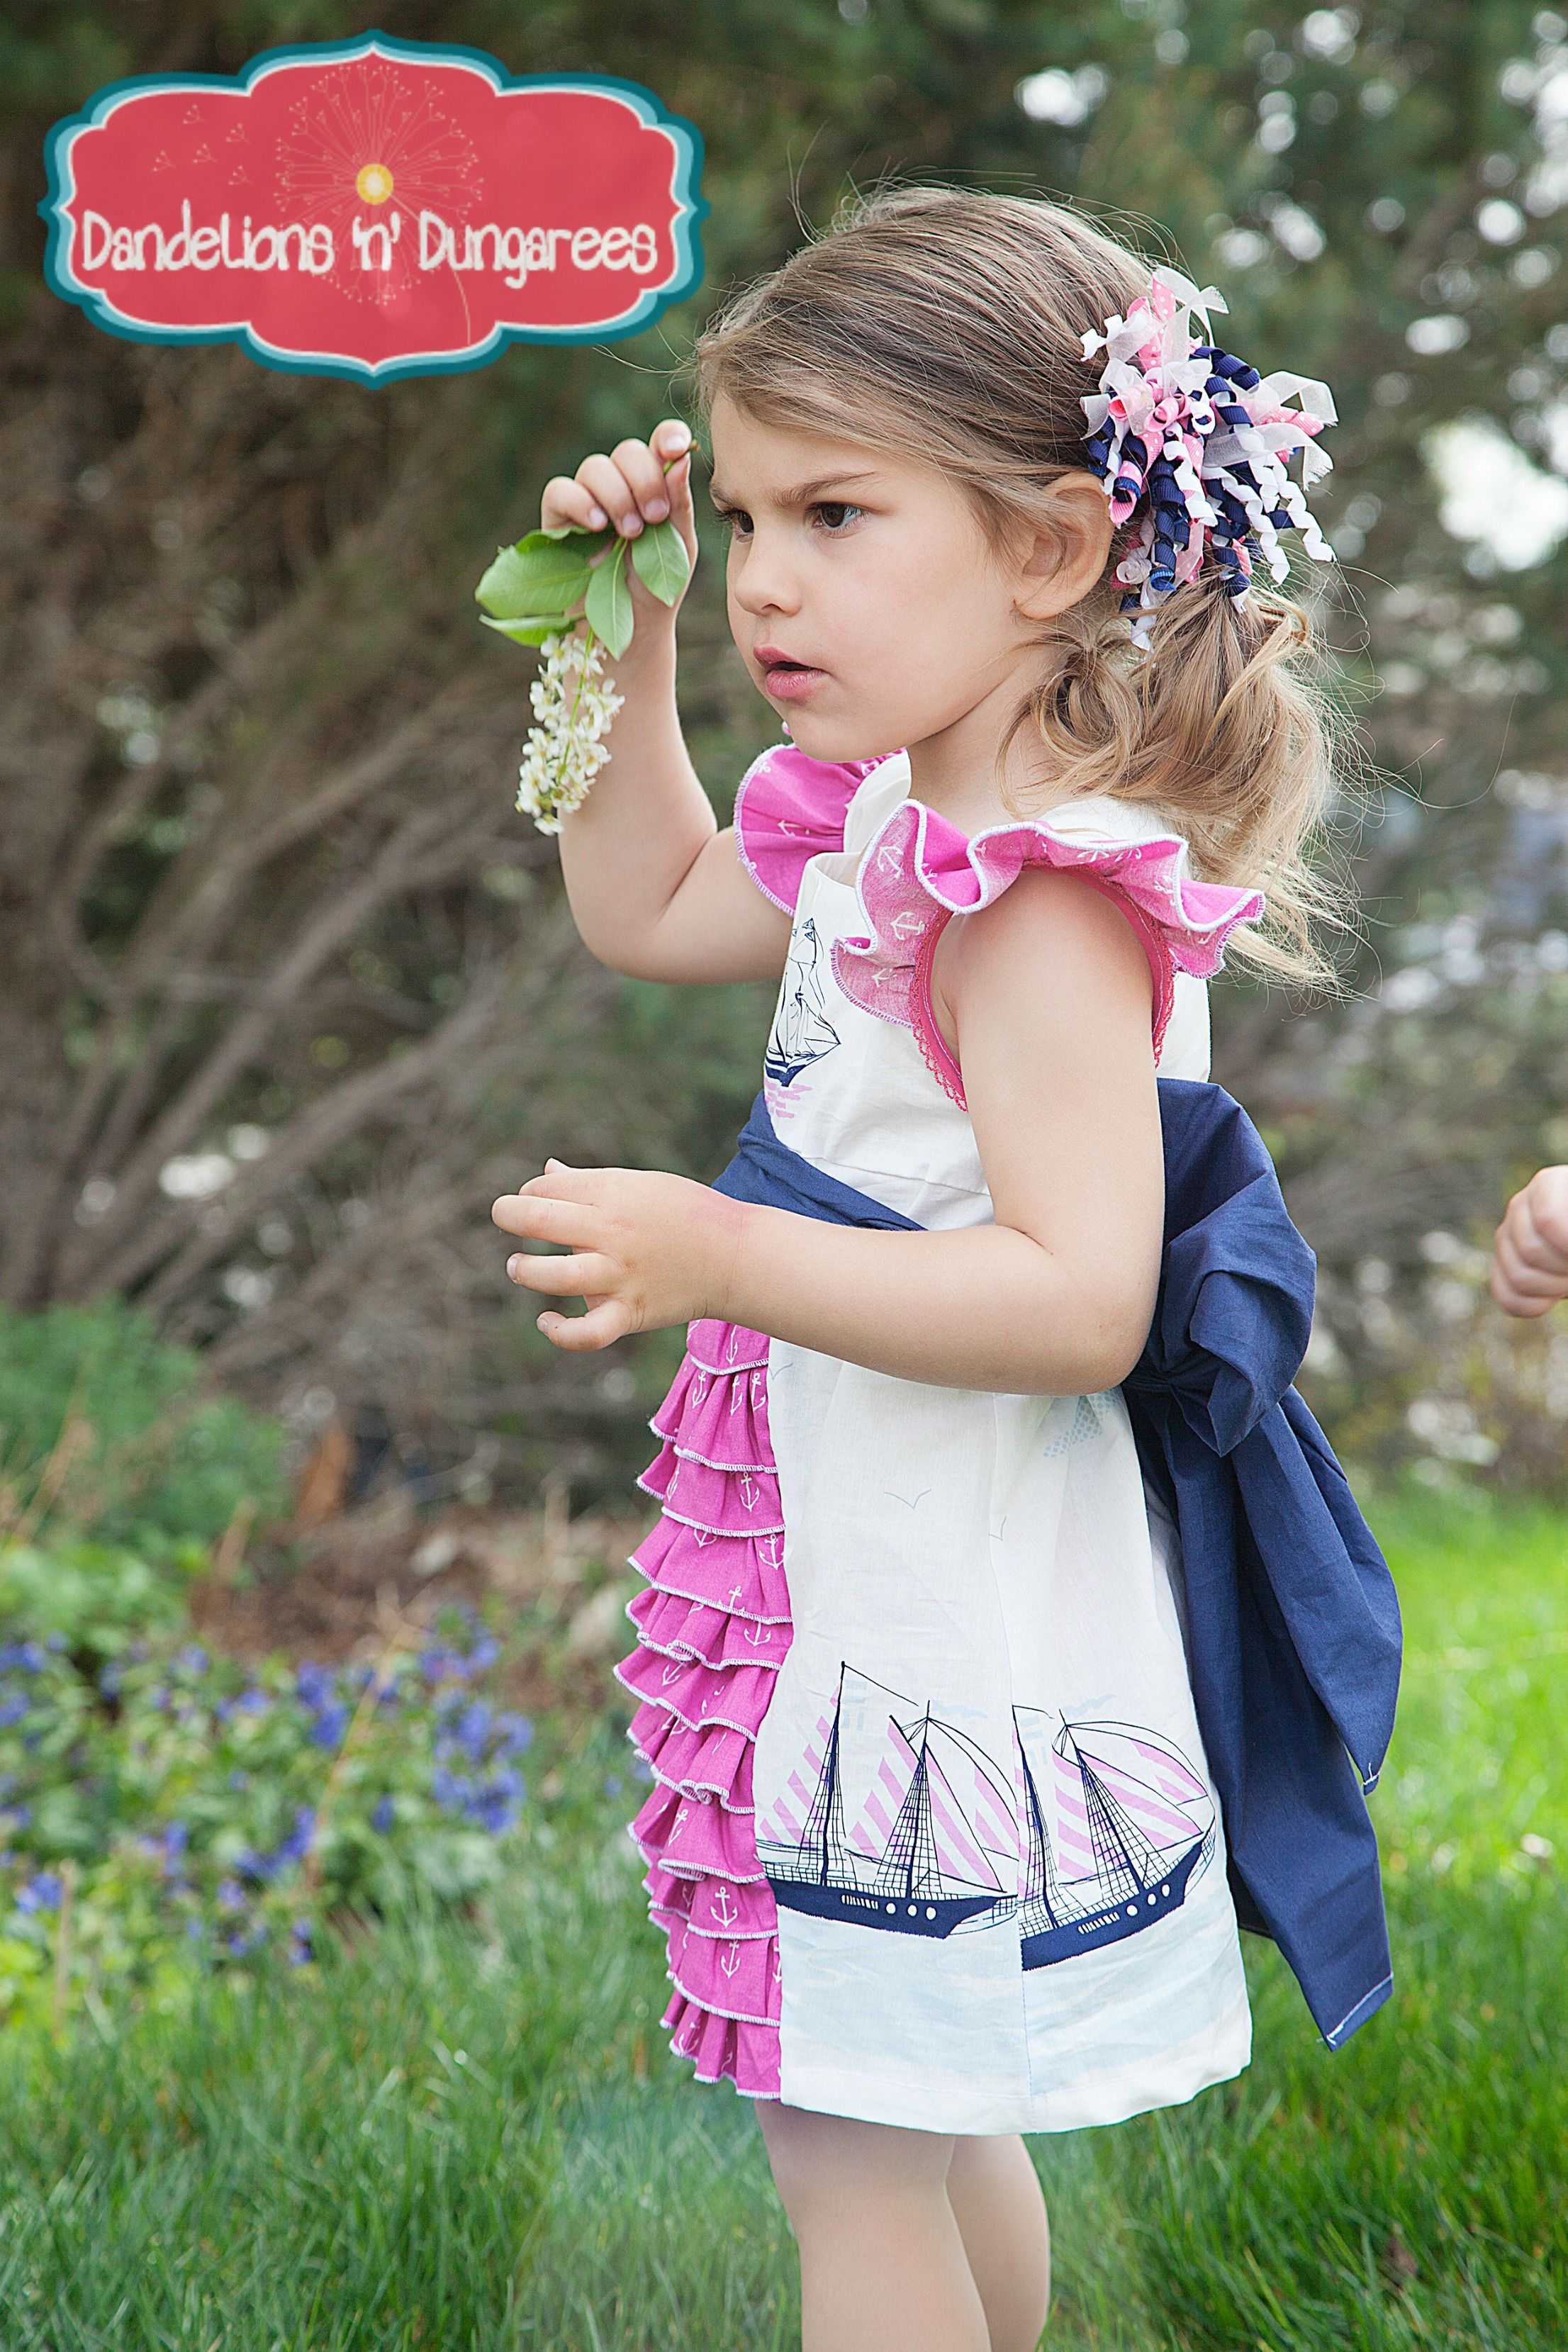 Baby pink dungaree dress  fairytale frocks and lollipops  dandelions and dungarees